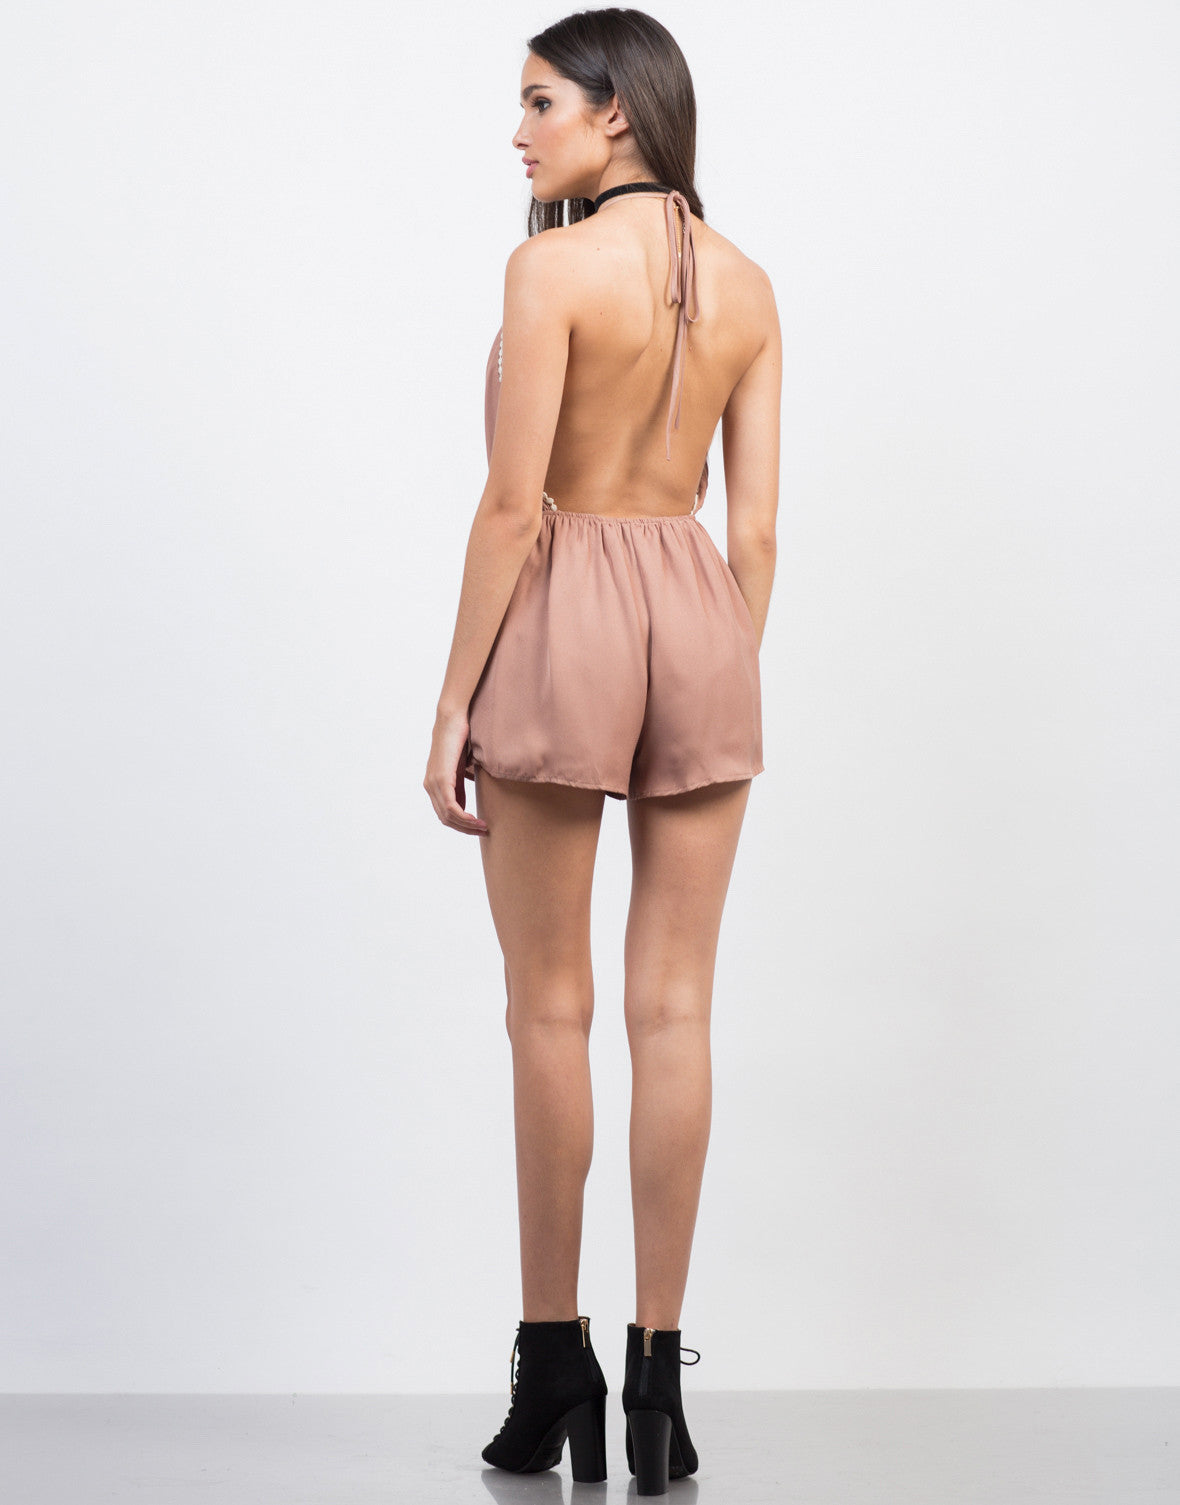 Back View of Pom Pom Halter Romper